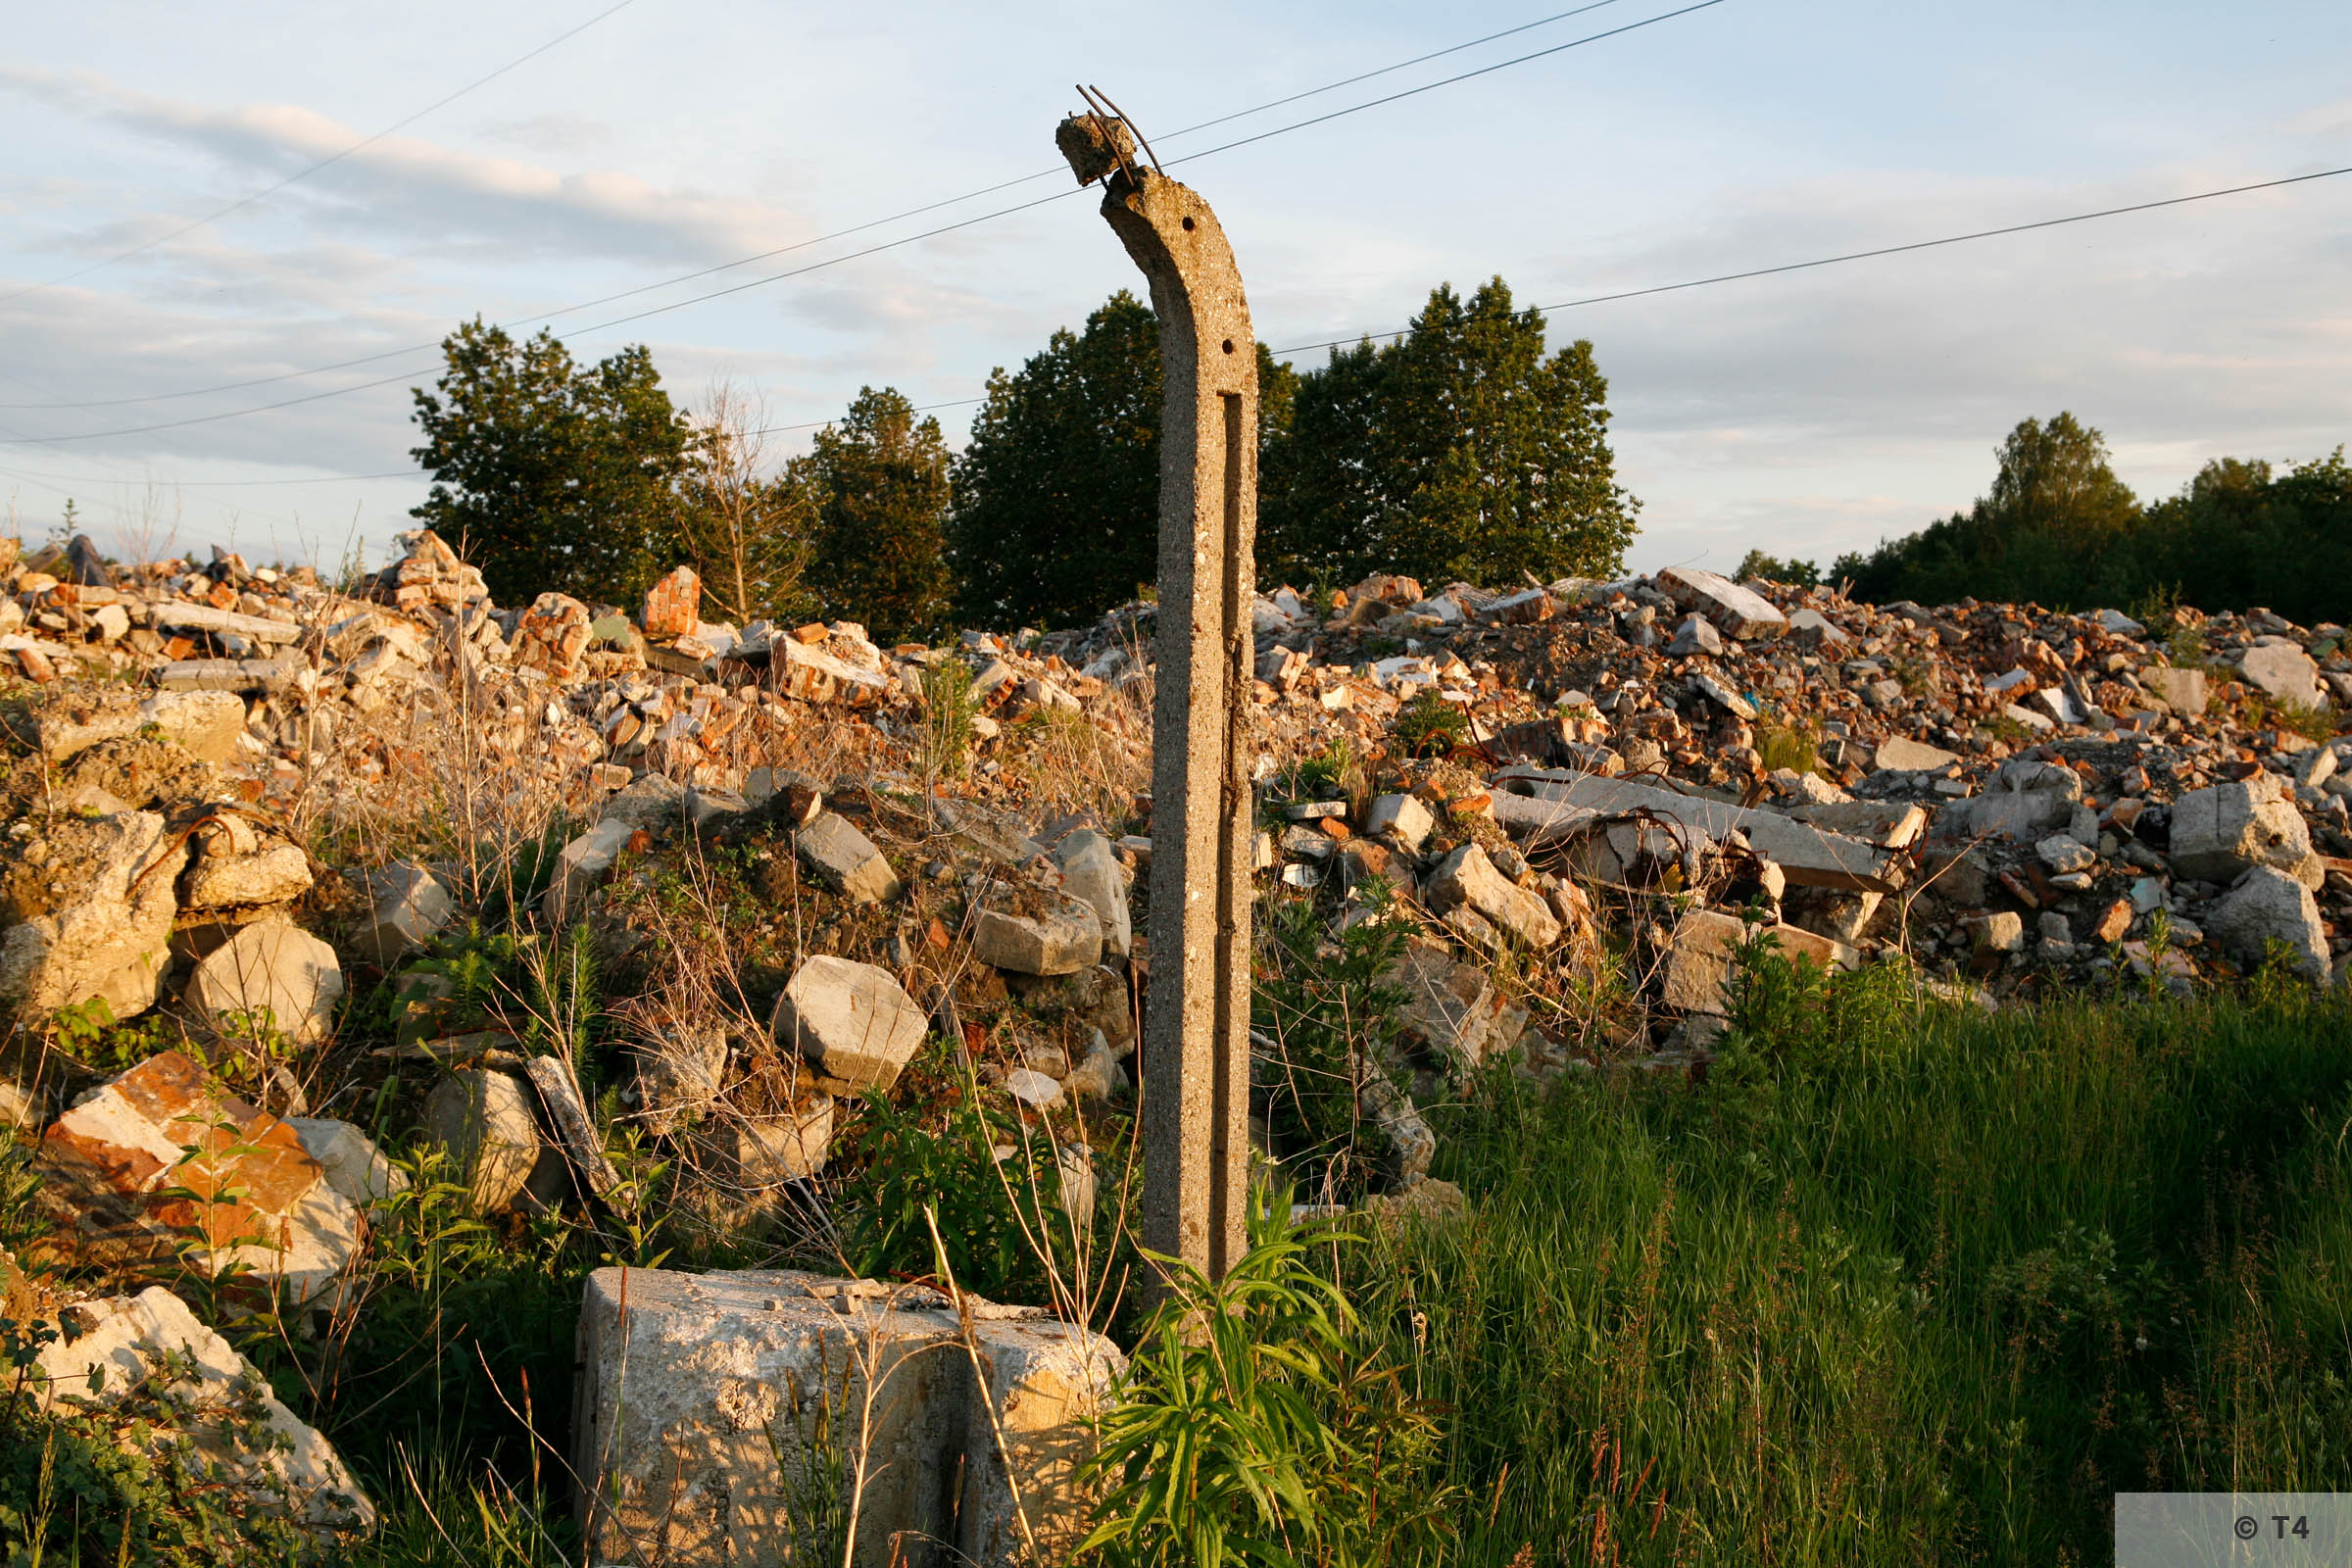 Remnants of camp near Jaworzno power station. 2007 T4 6440